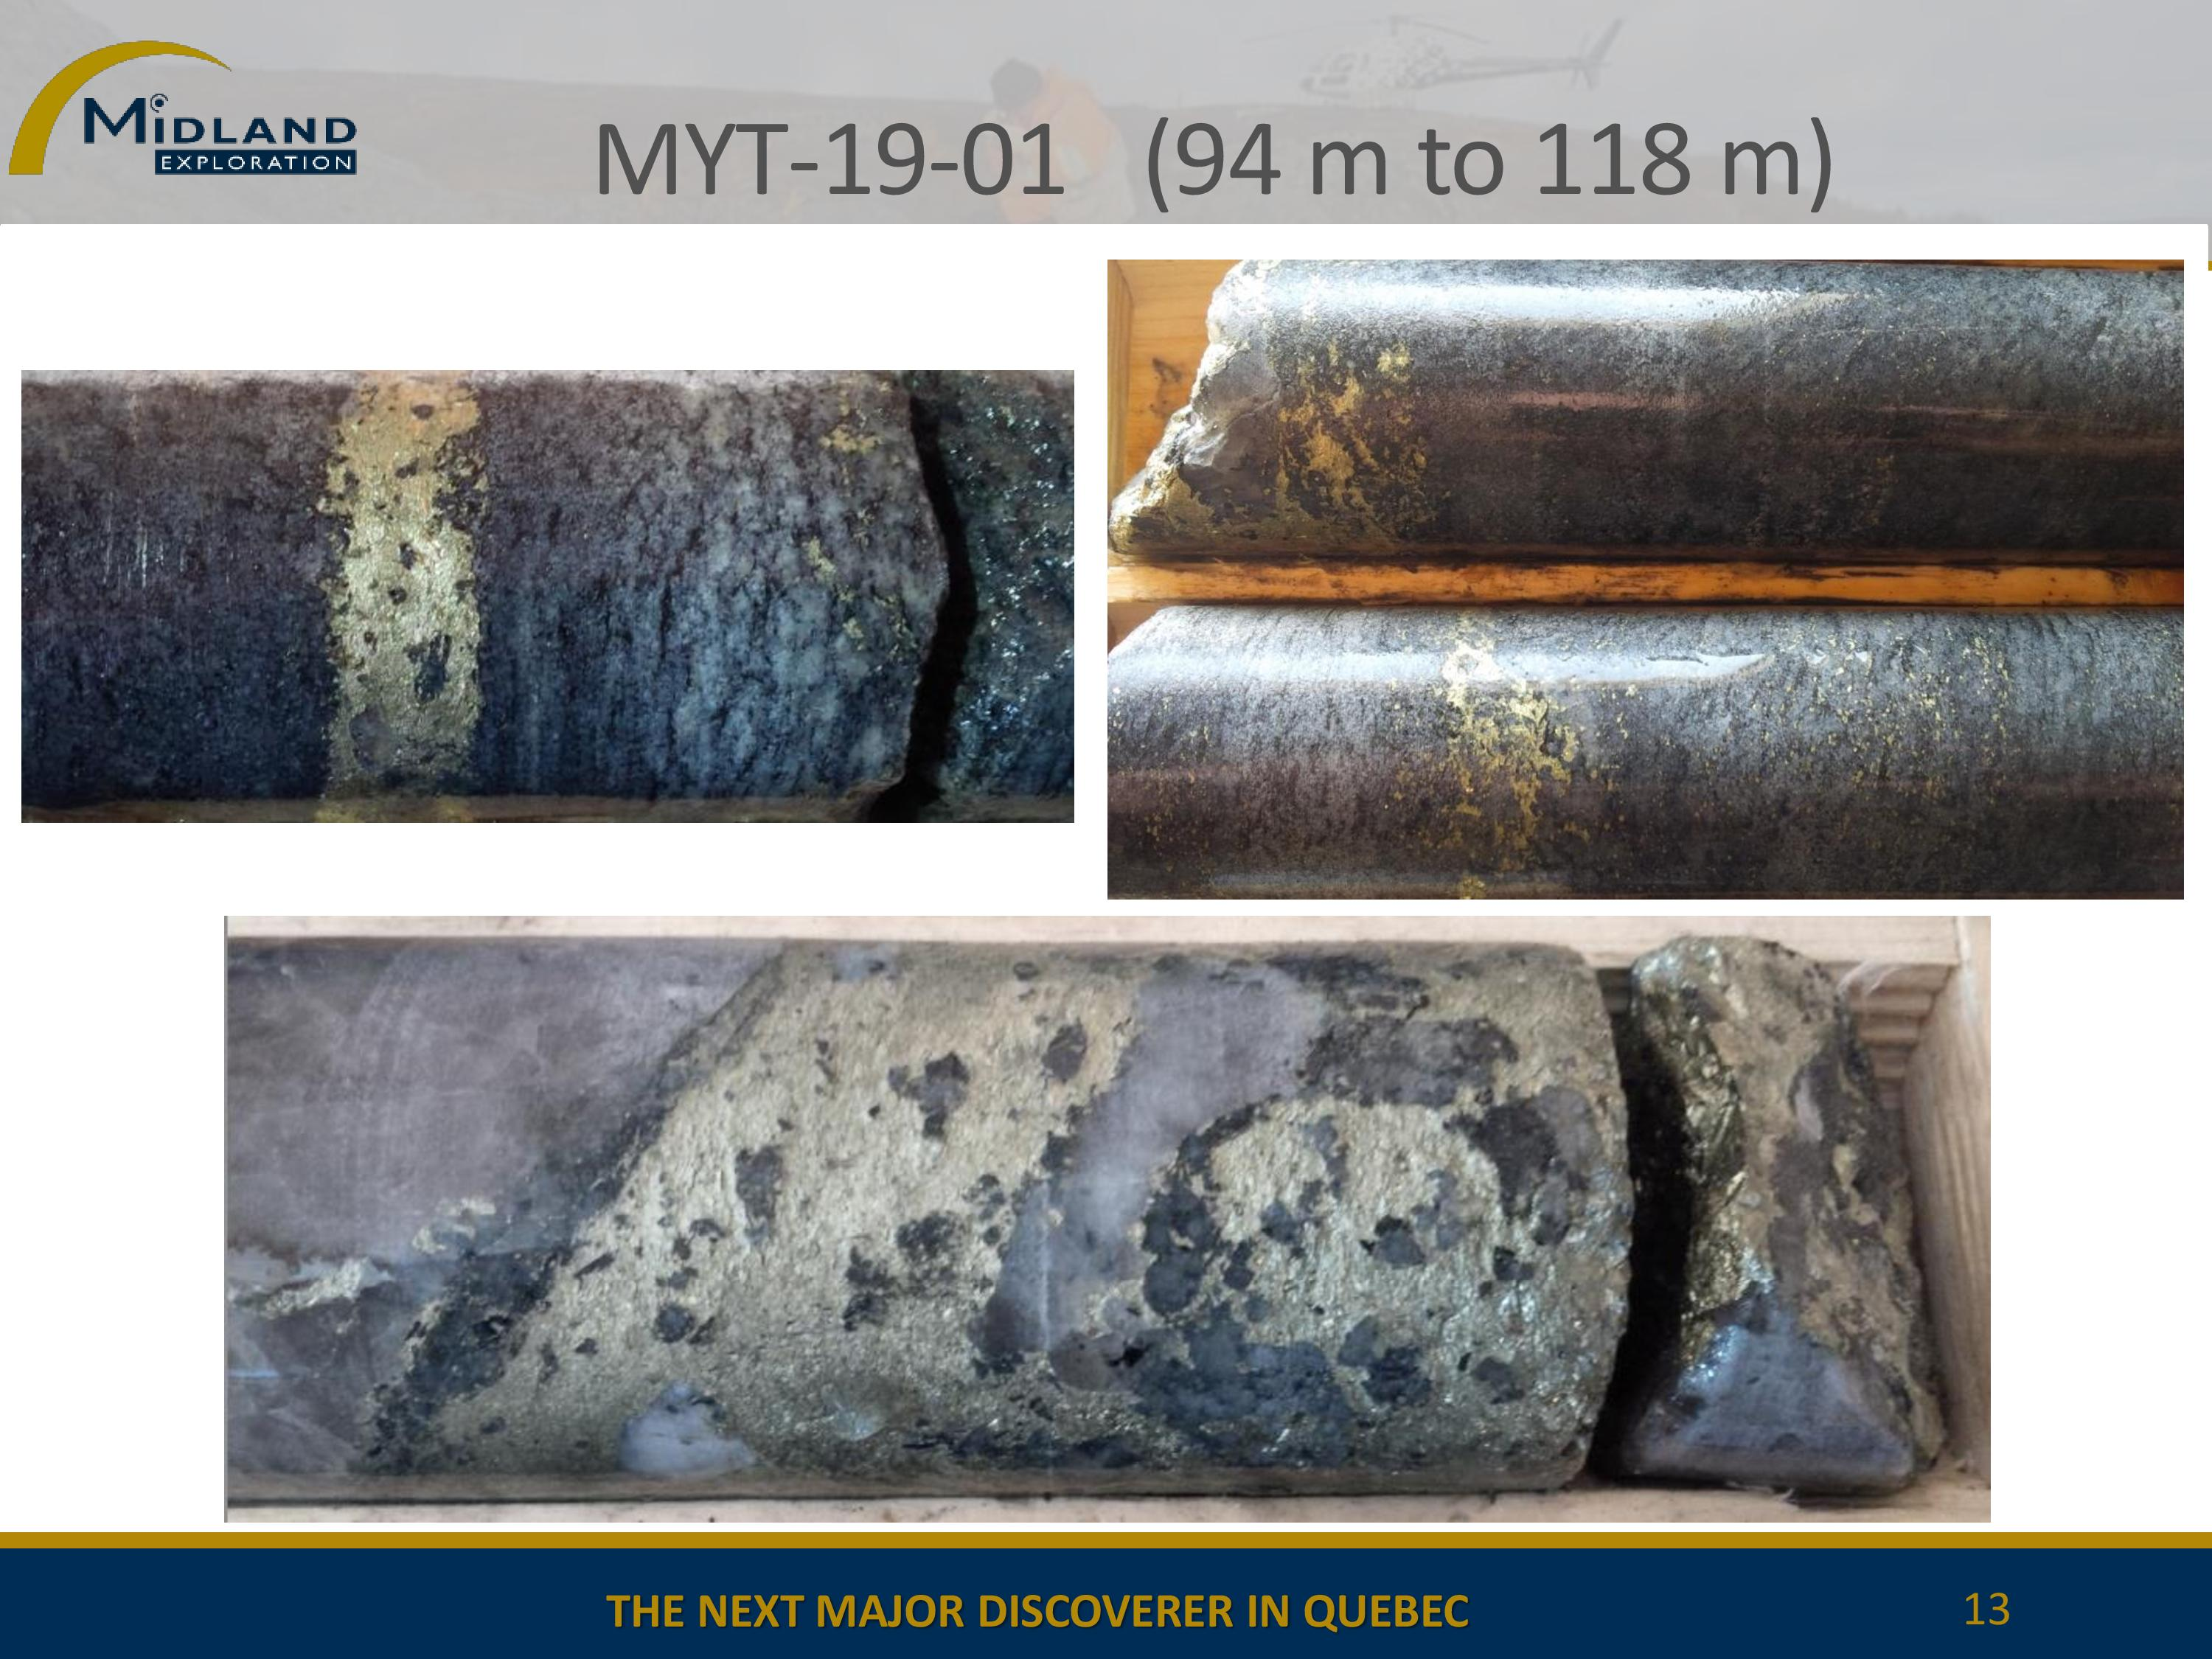 Copper mineralization in MYT-19-01